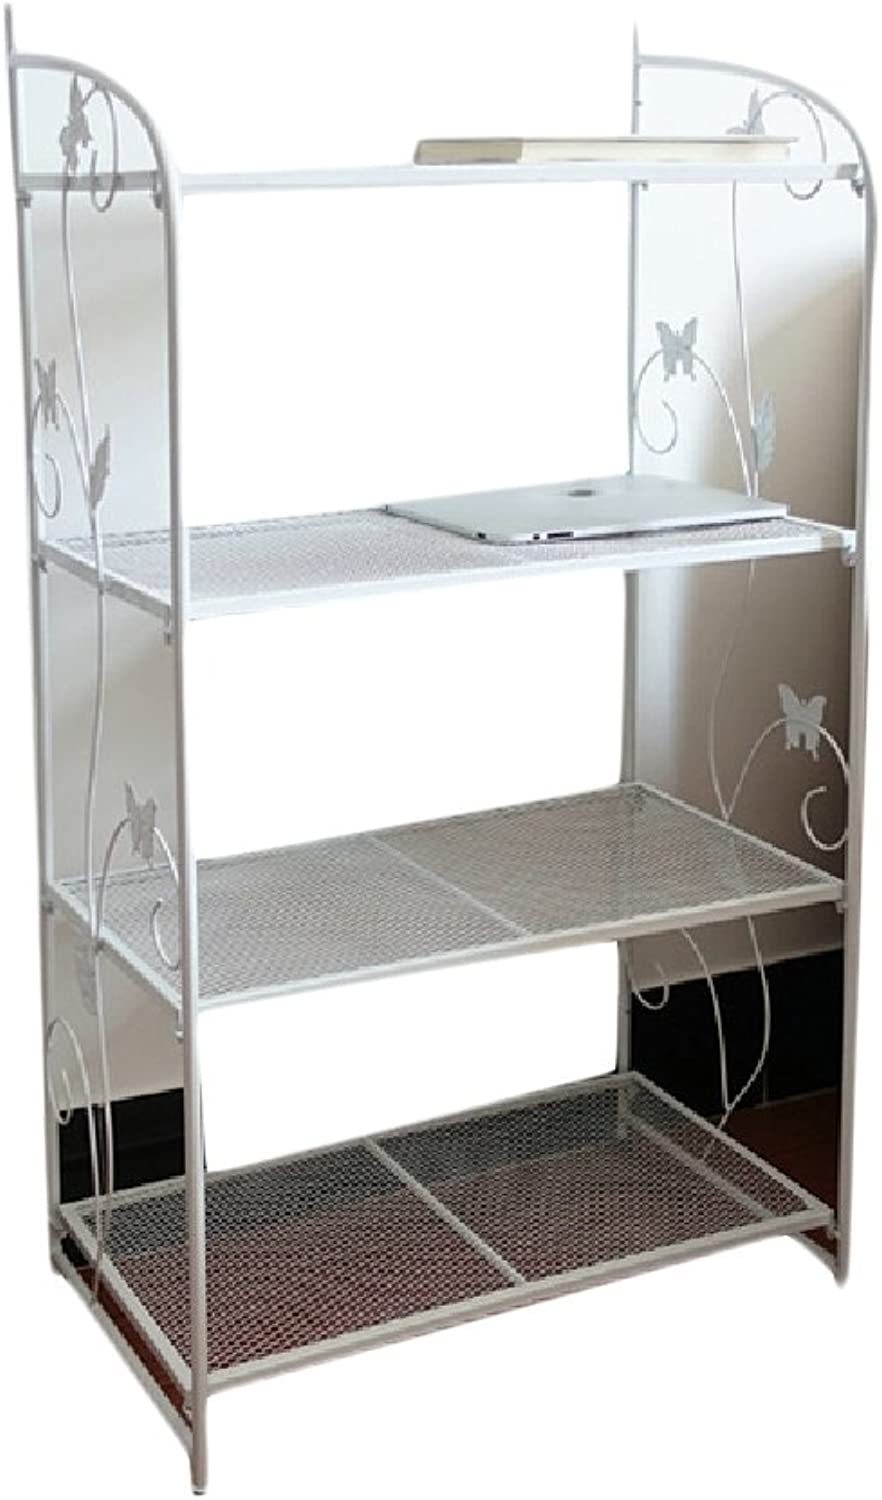 XINHE Shelving Cabinet Expandable Wire 4-Shelf Translucent Display Rack White 4 Shelves